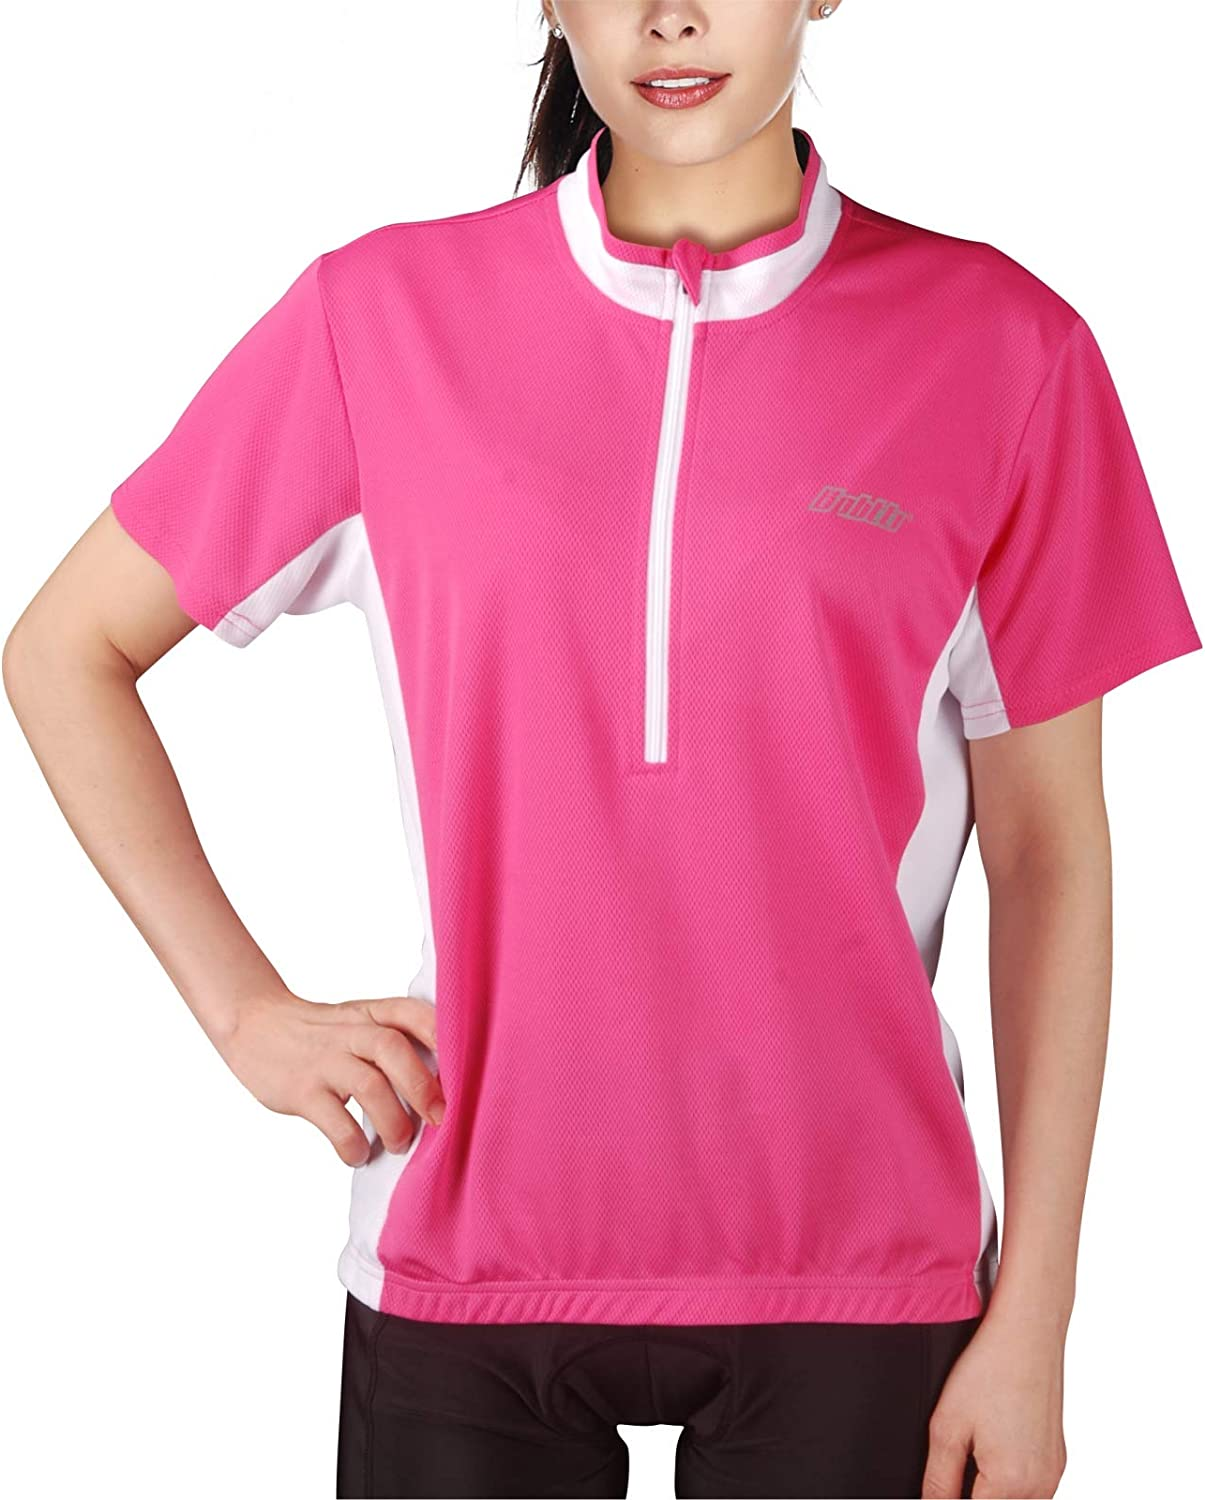 bpbtti Women's Short Sleeve MTB Shirts Cycling Bike Jersey with 3 Rear Pockets - Moisture Wicking&Breathable